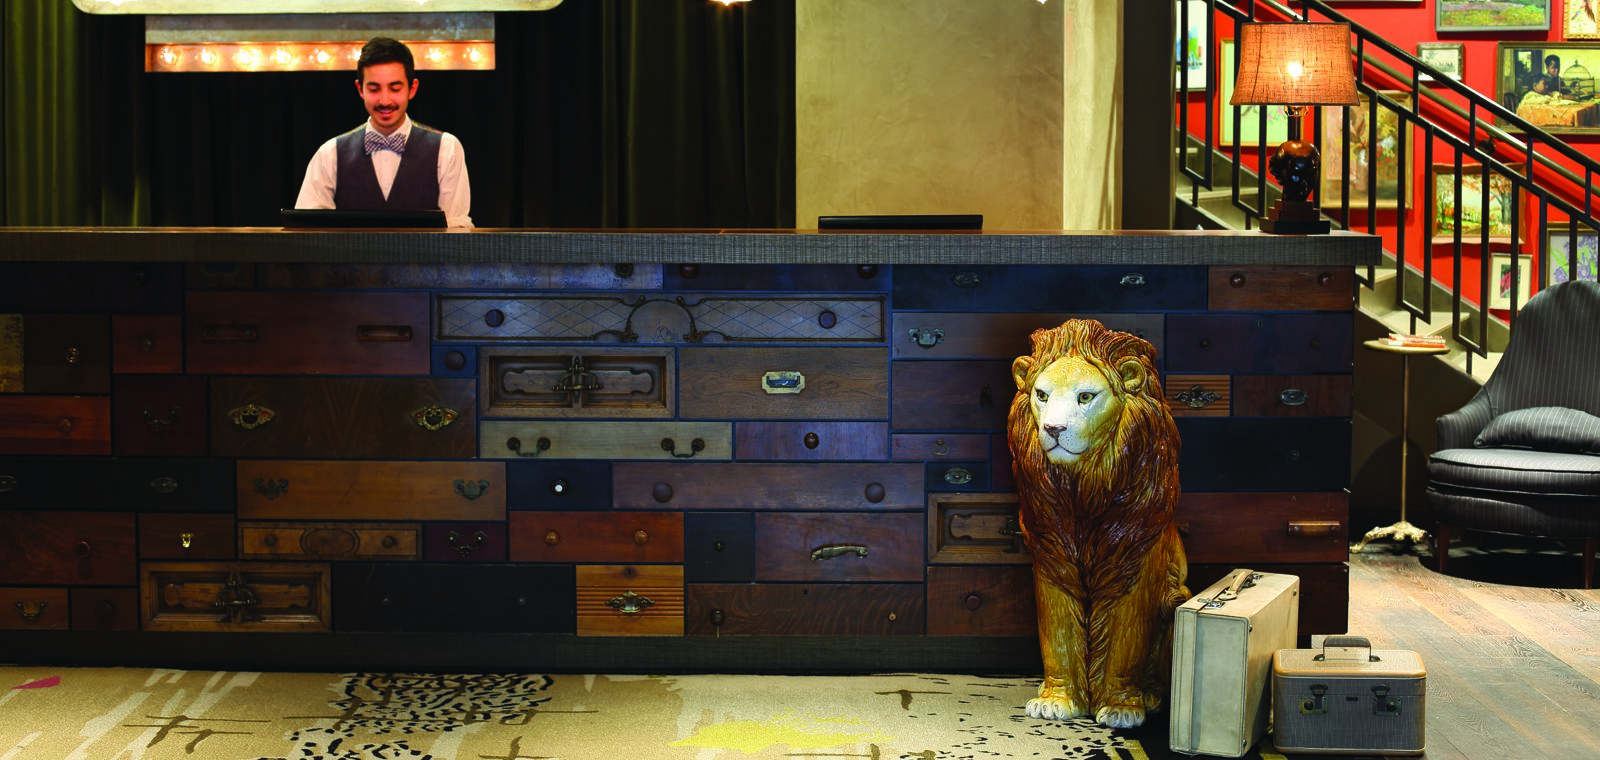 Hotel Lincoln Reception Desk with a Lion Statue